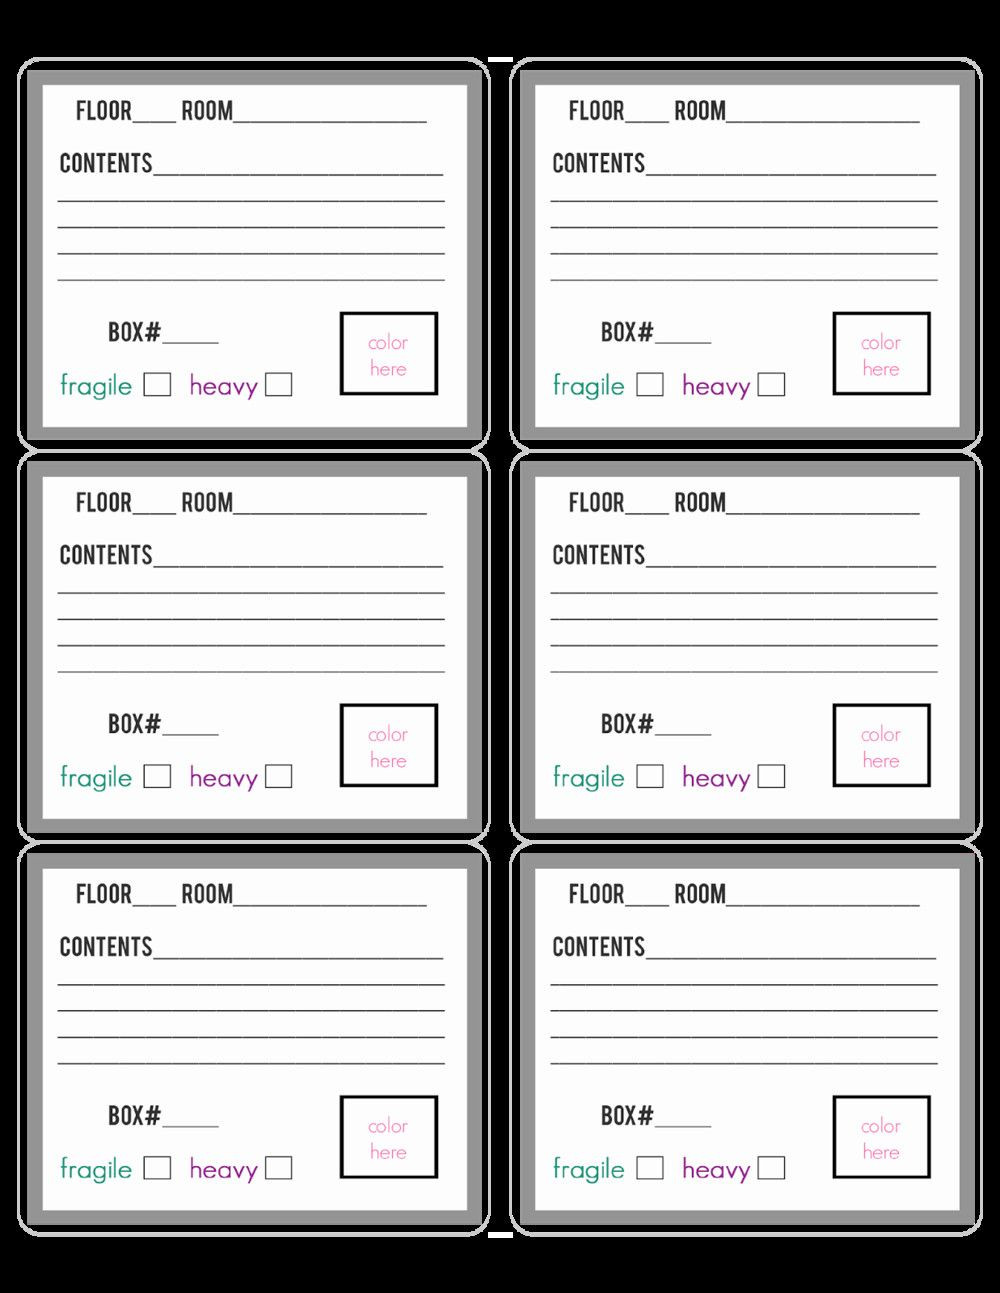 Breaker Box Label Template